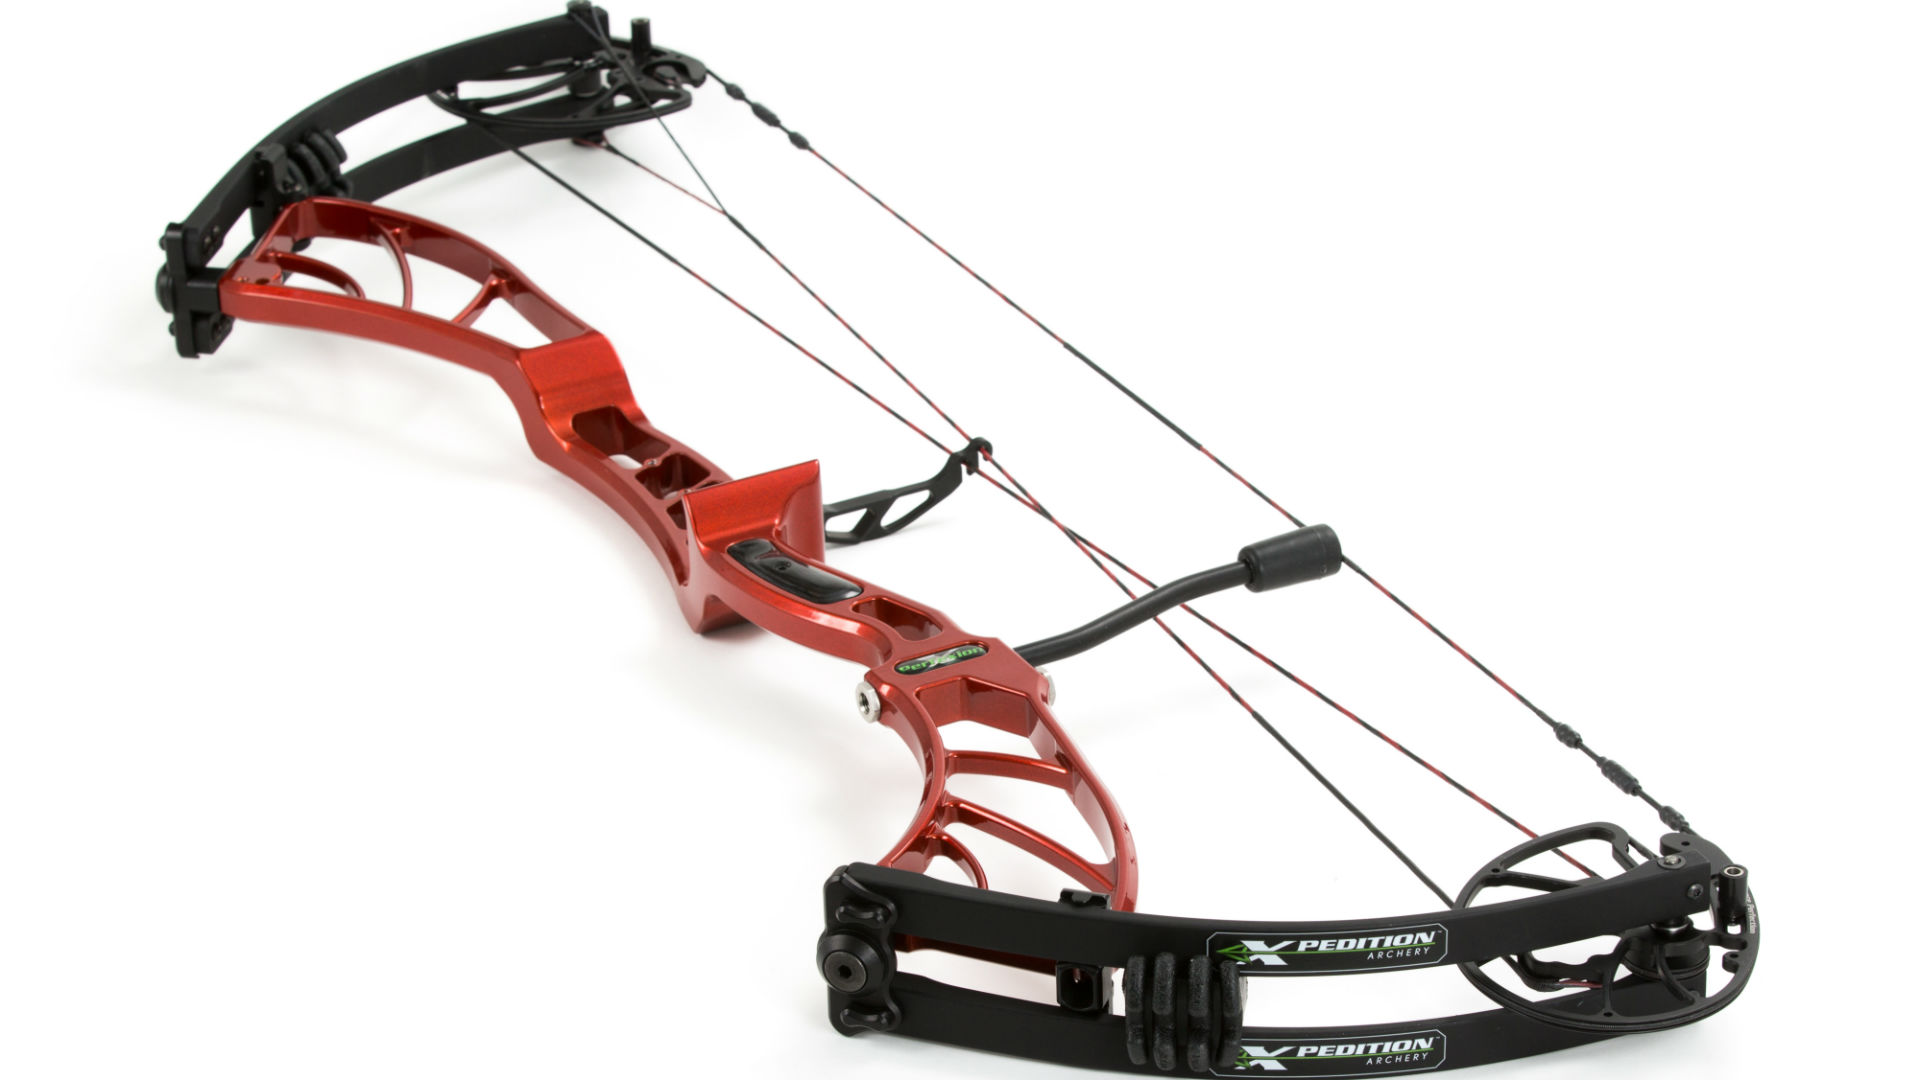 Top five compound bows of 2015